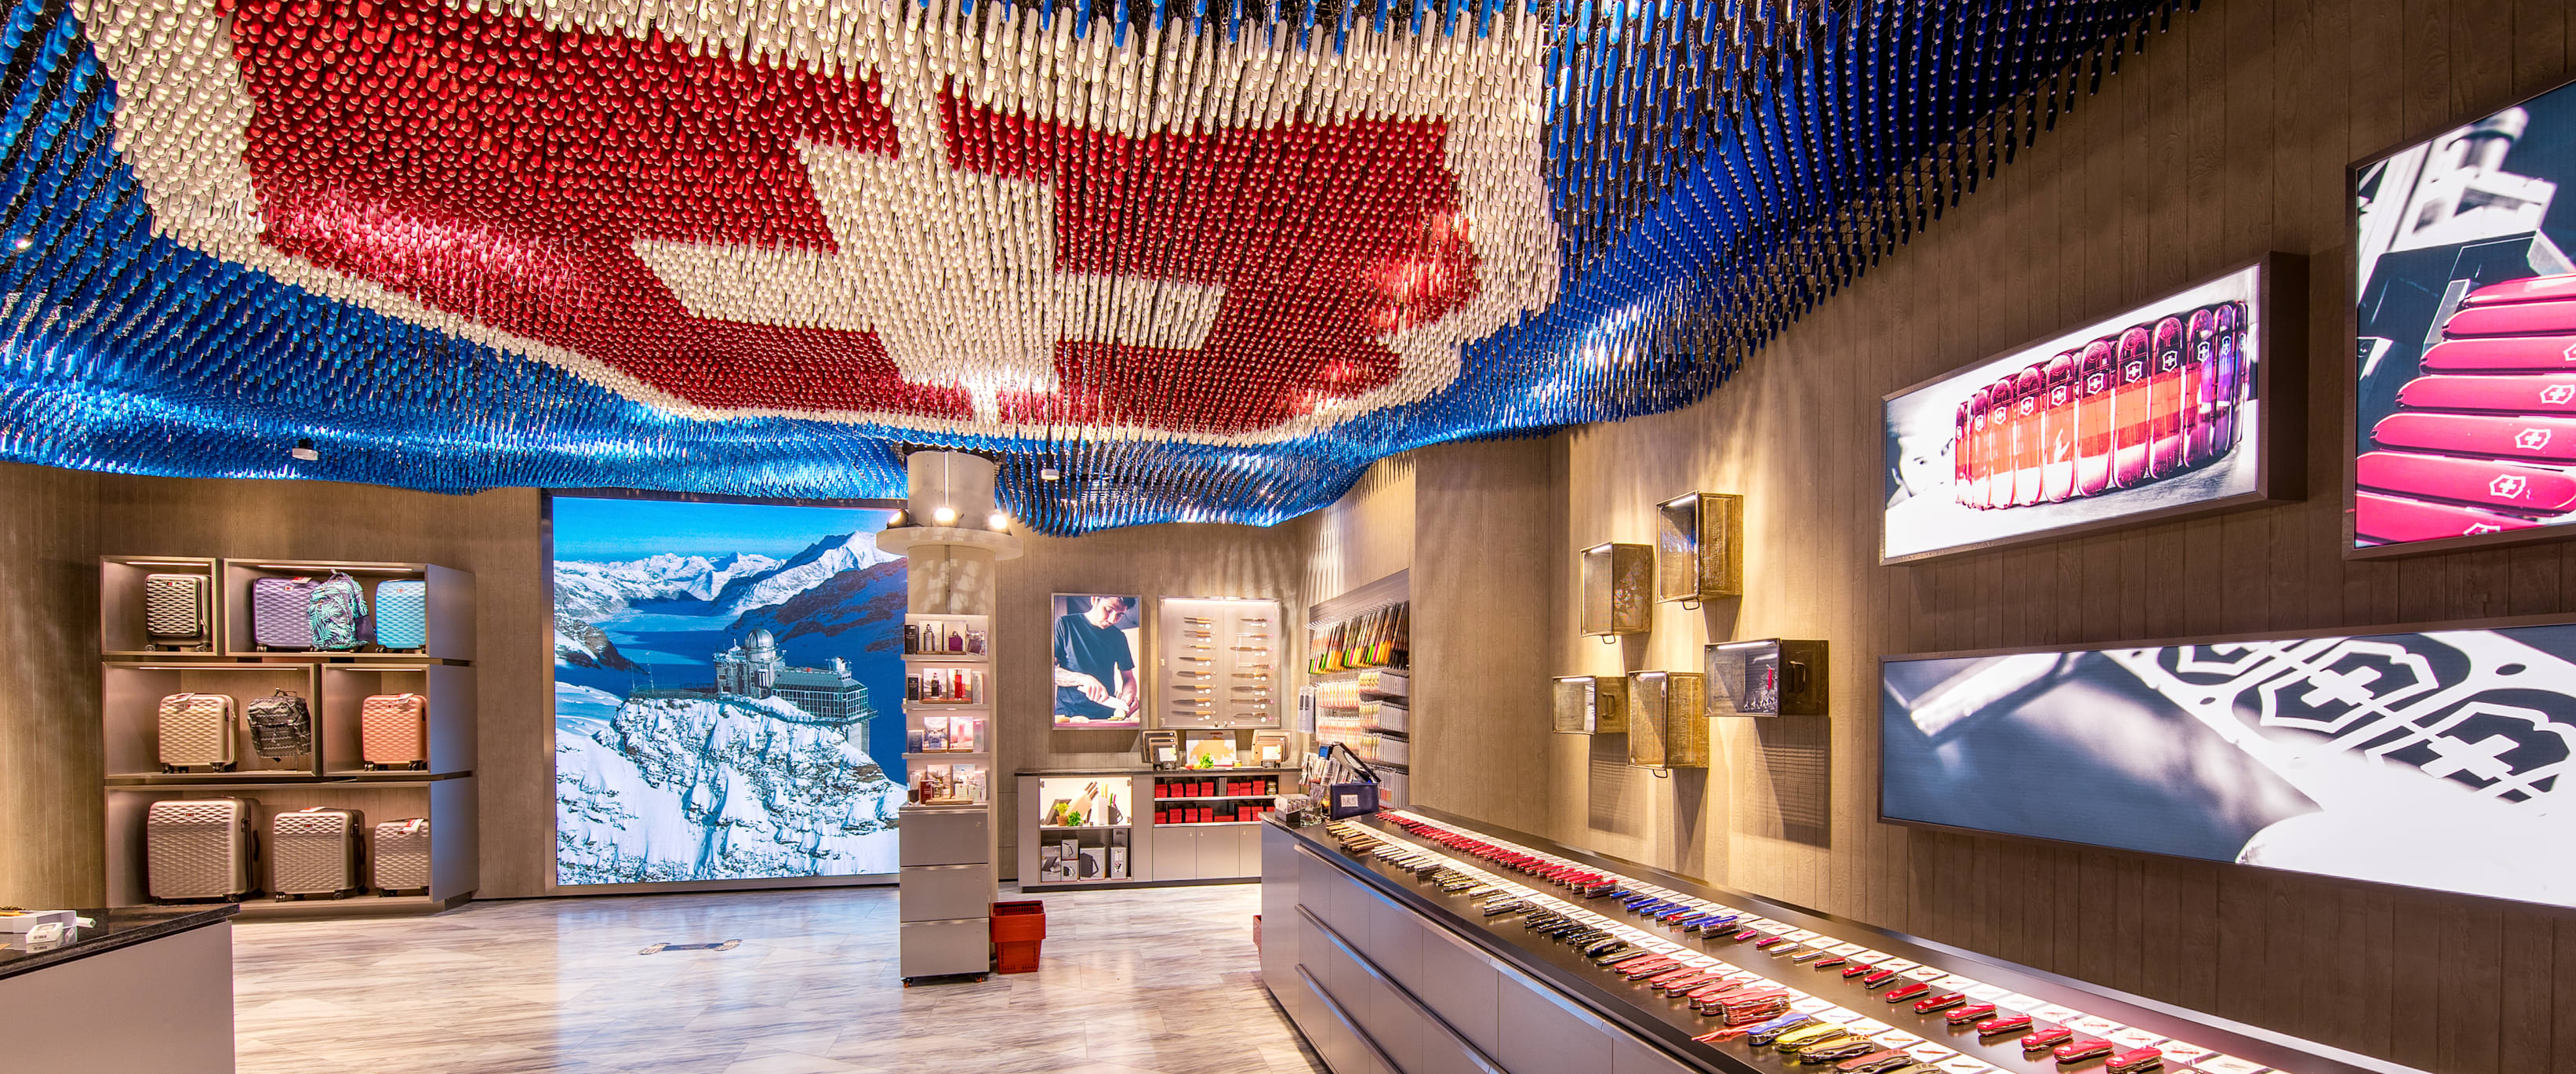 Experiences, flagship store, indoors, Interlaken, Jungfrau Railways, Lindt, partnerships, shop, store, Swatch, relationships, Victorinox, jungfrau.ch